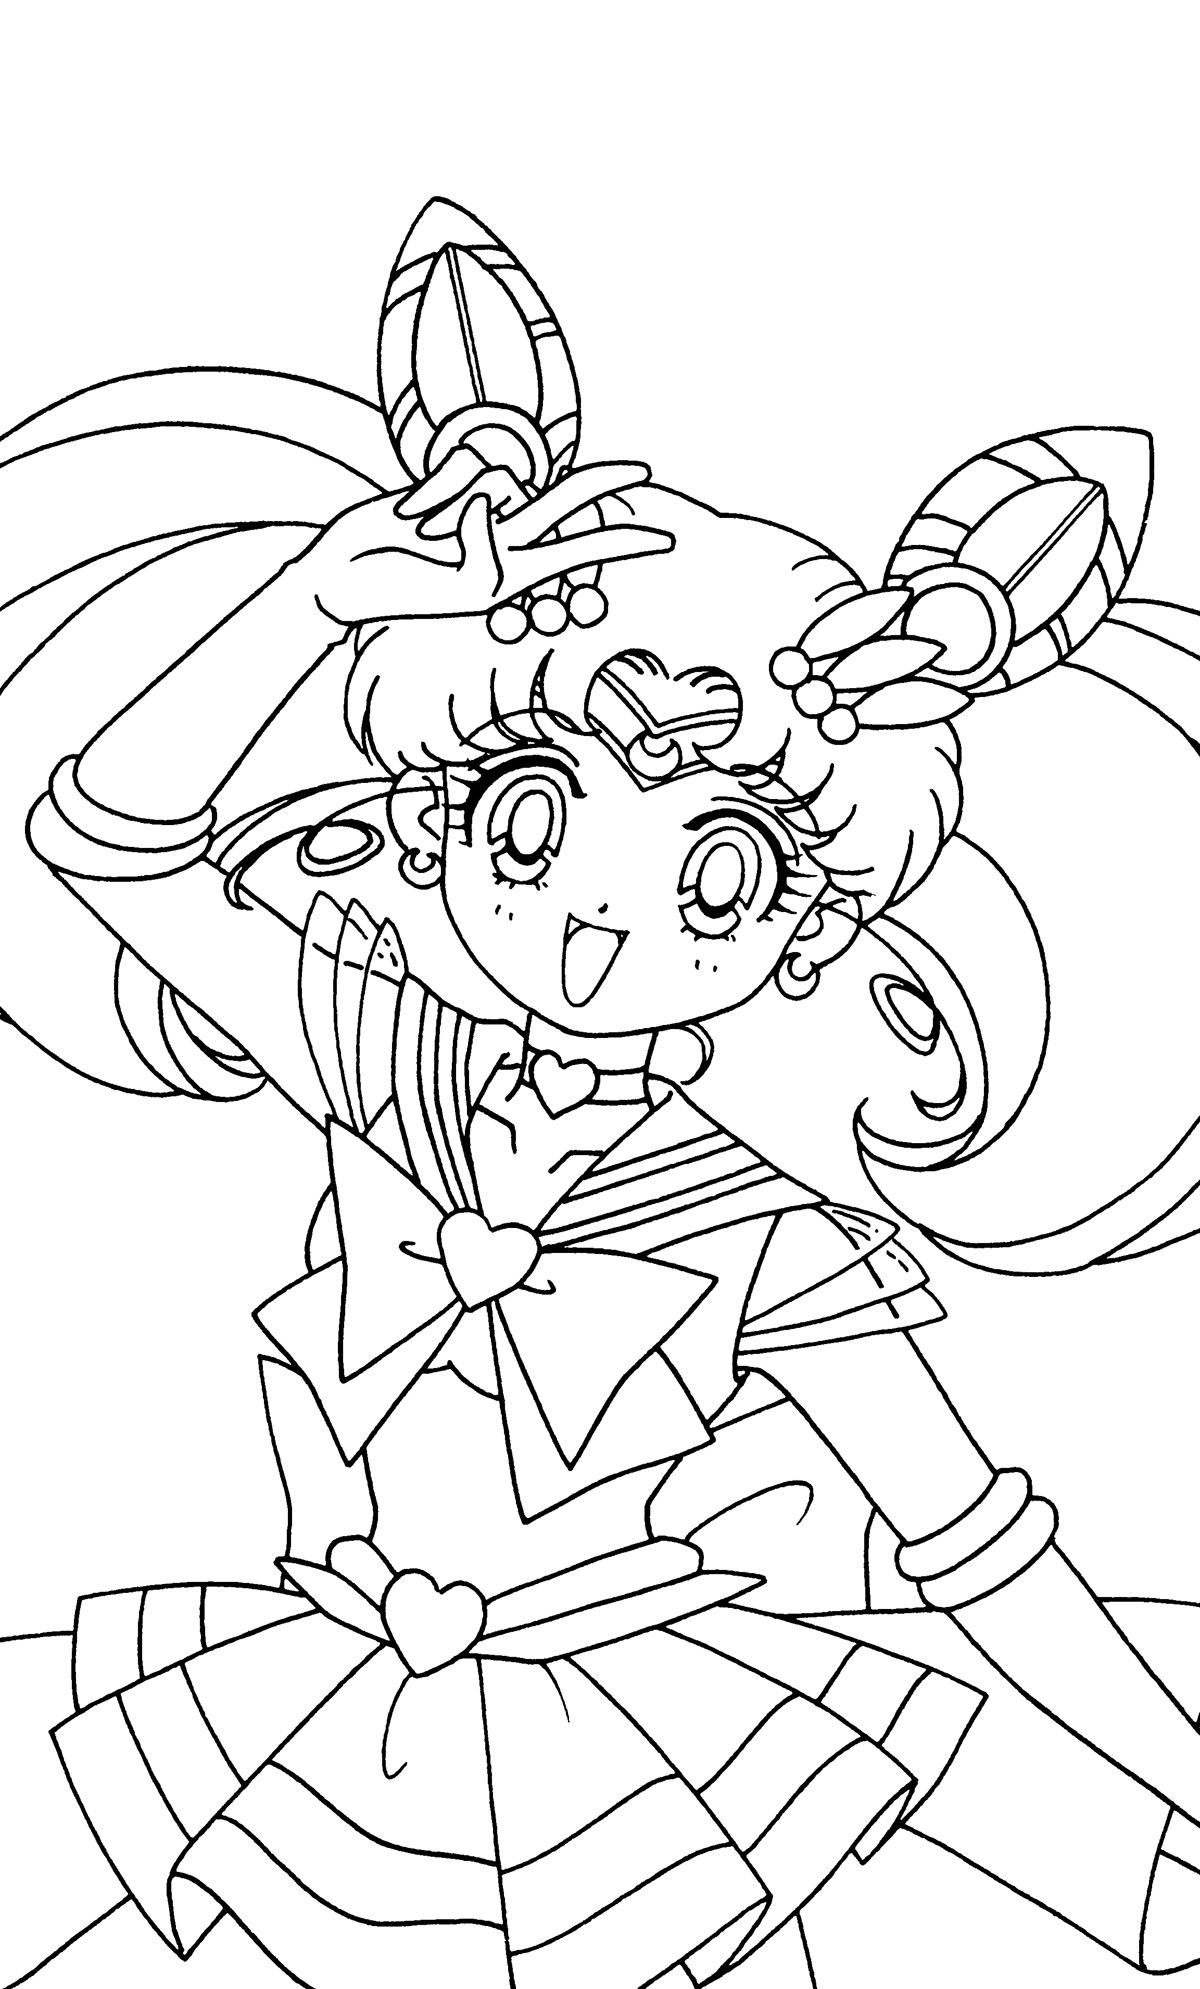 chibi sailor moon coloring pages moon coloring pages at getcoloringscom free printable moon chibi coloring pages sailor